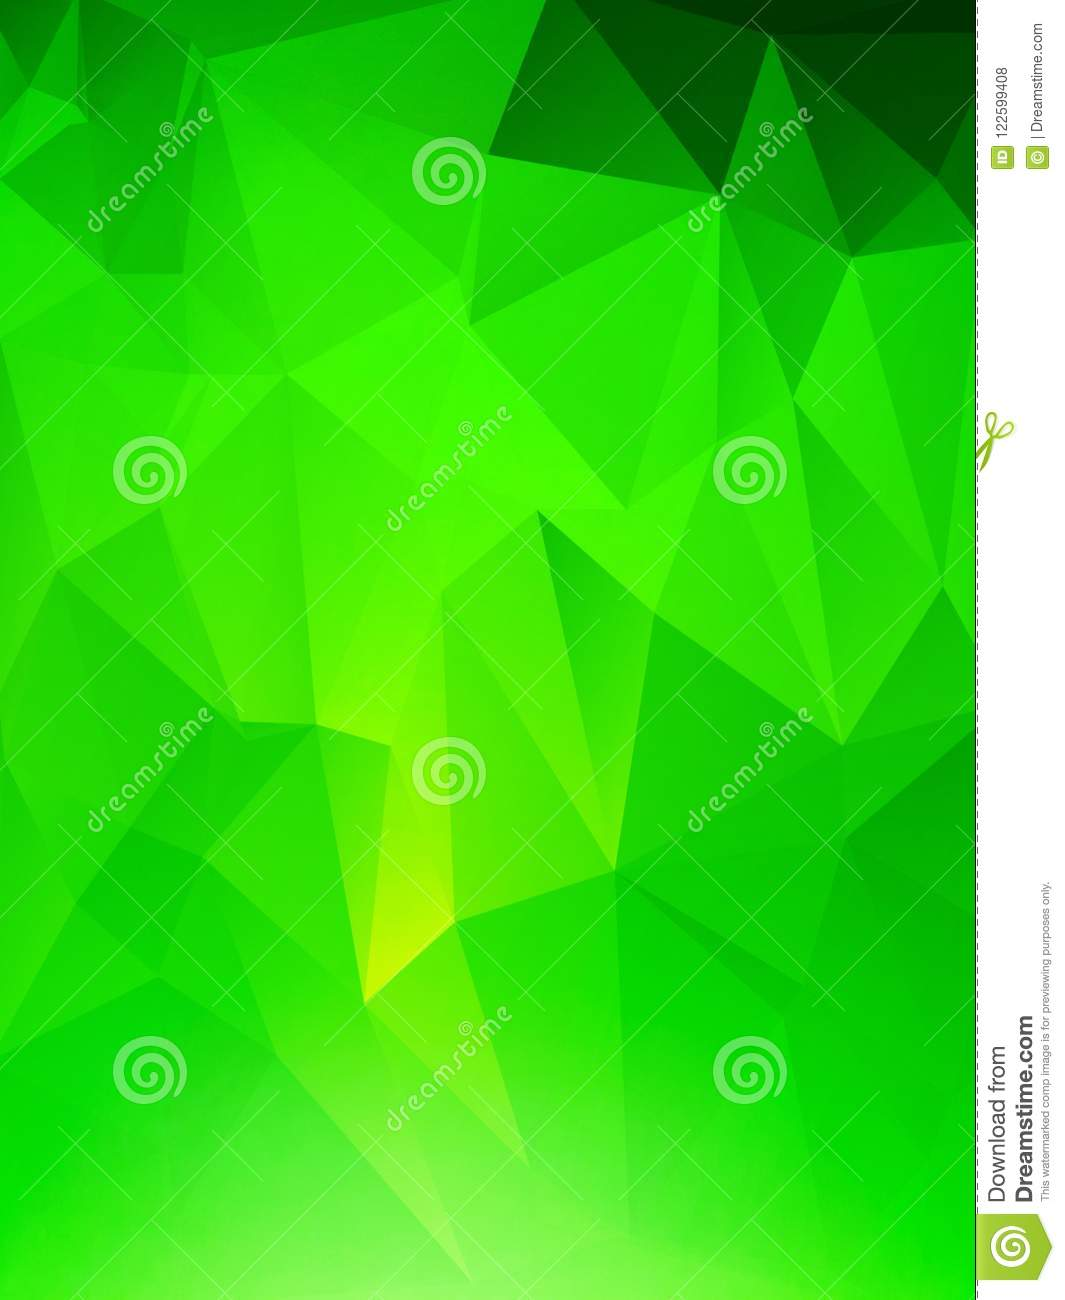 Beautiful wallpaper, background, light and dark, green ombre, triangles, abstract and colours